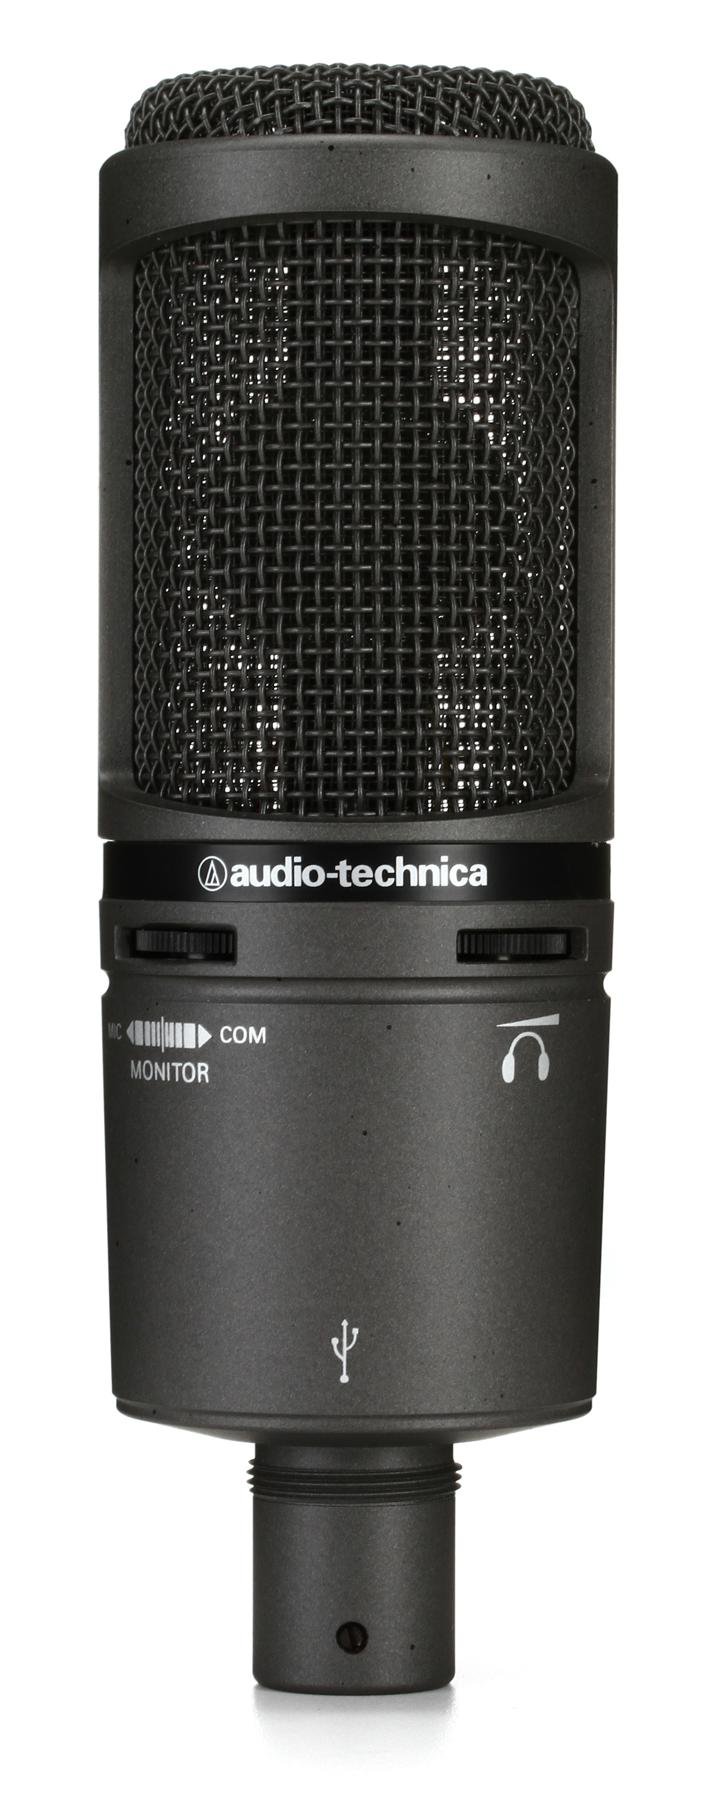 4. Audio-Technica ATR2100-USB